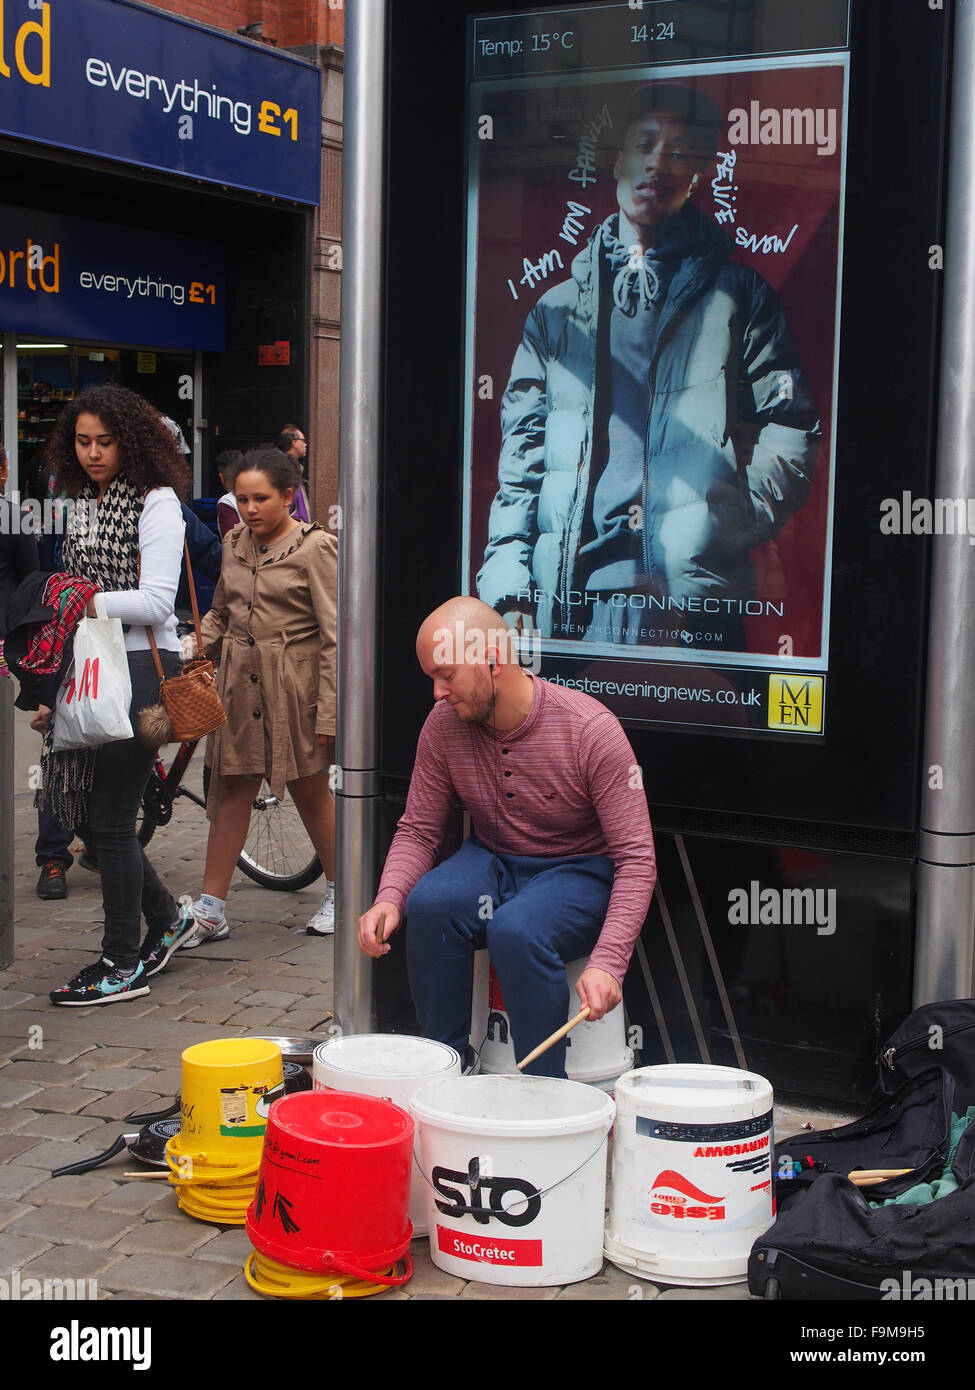 Man playing improvised drums (paint containers), one of the many street performers in Manchester city centre, UK. - Stock Image